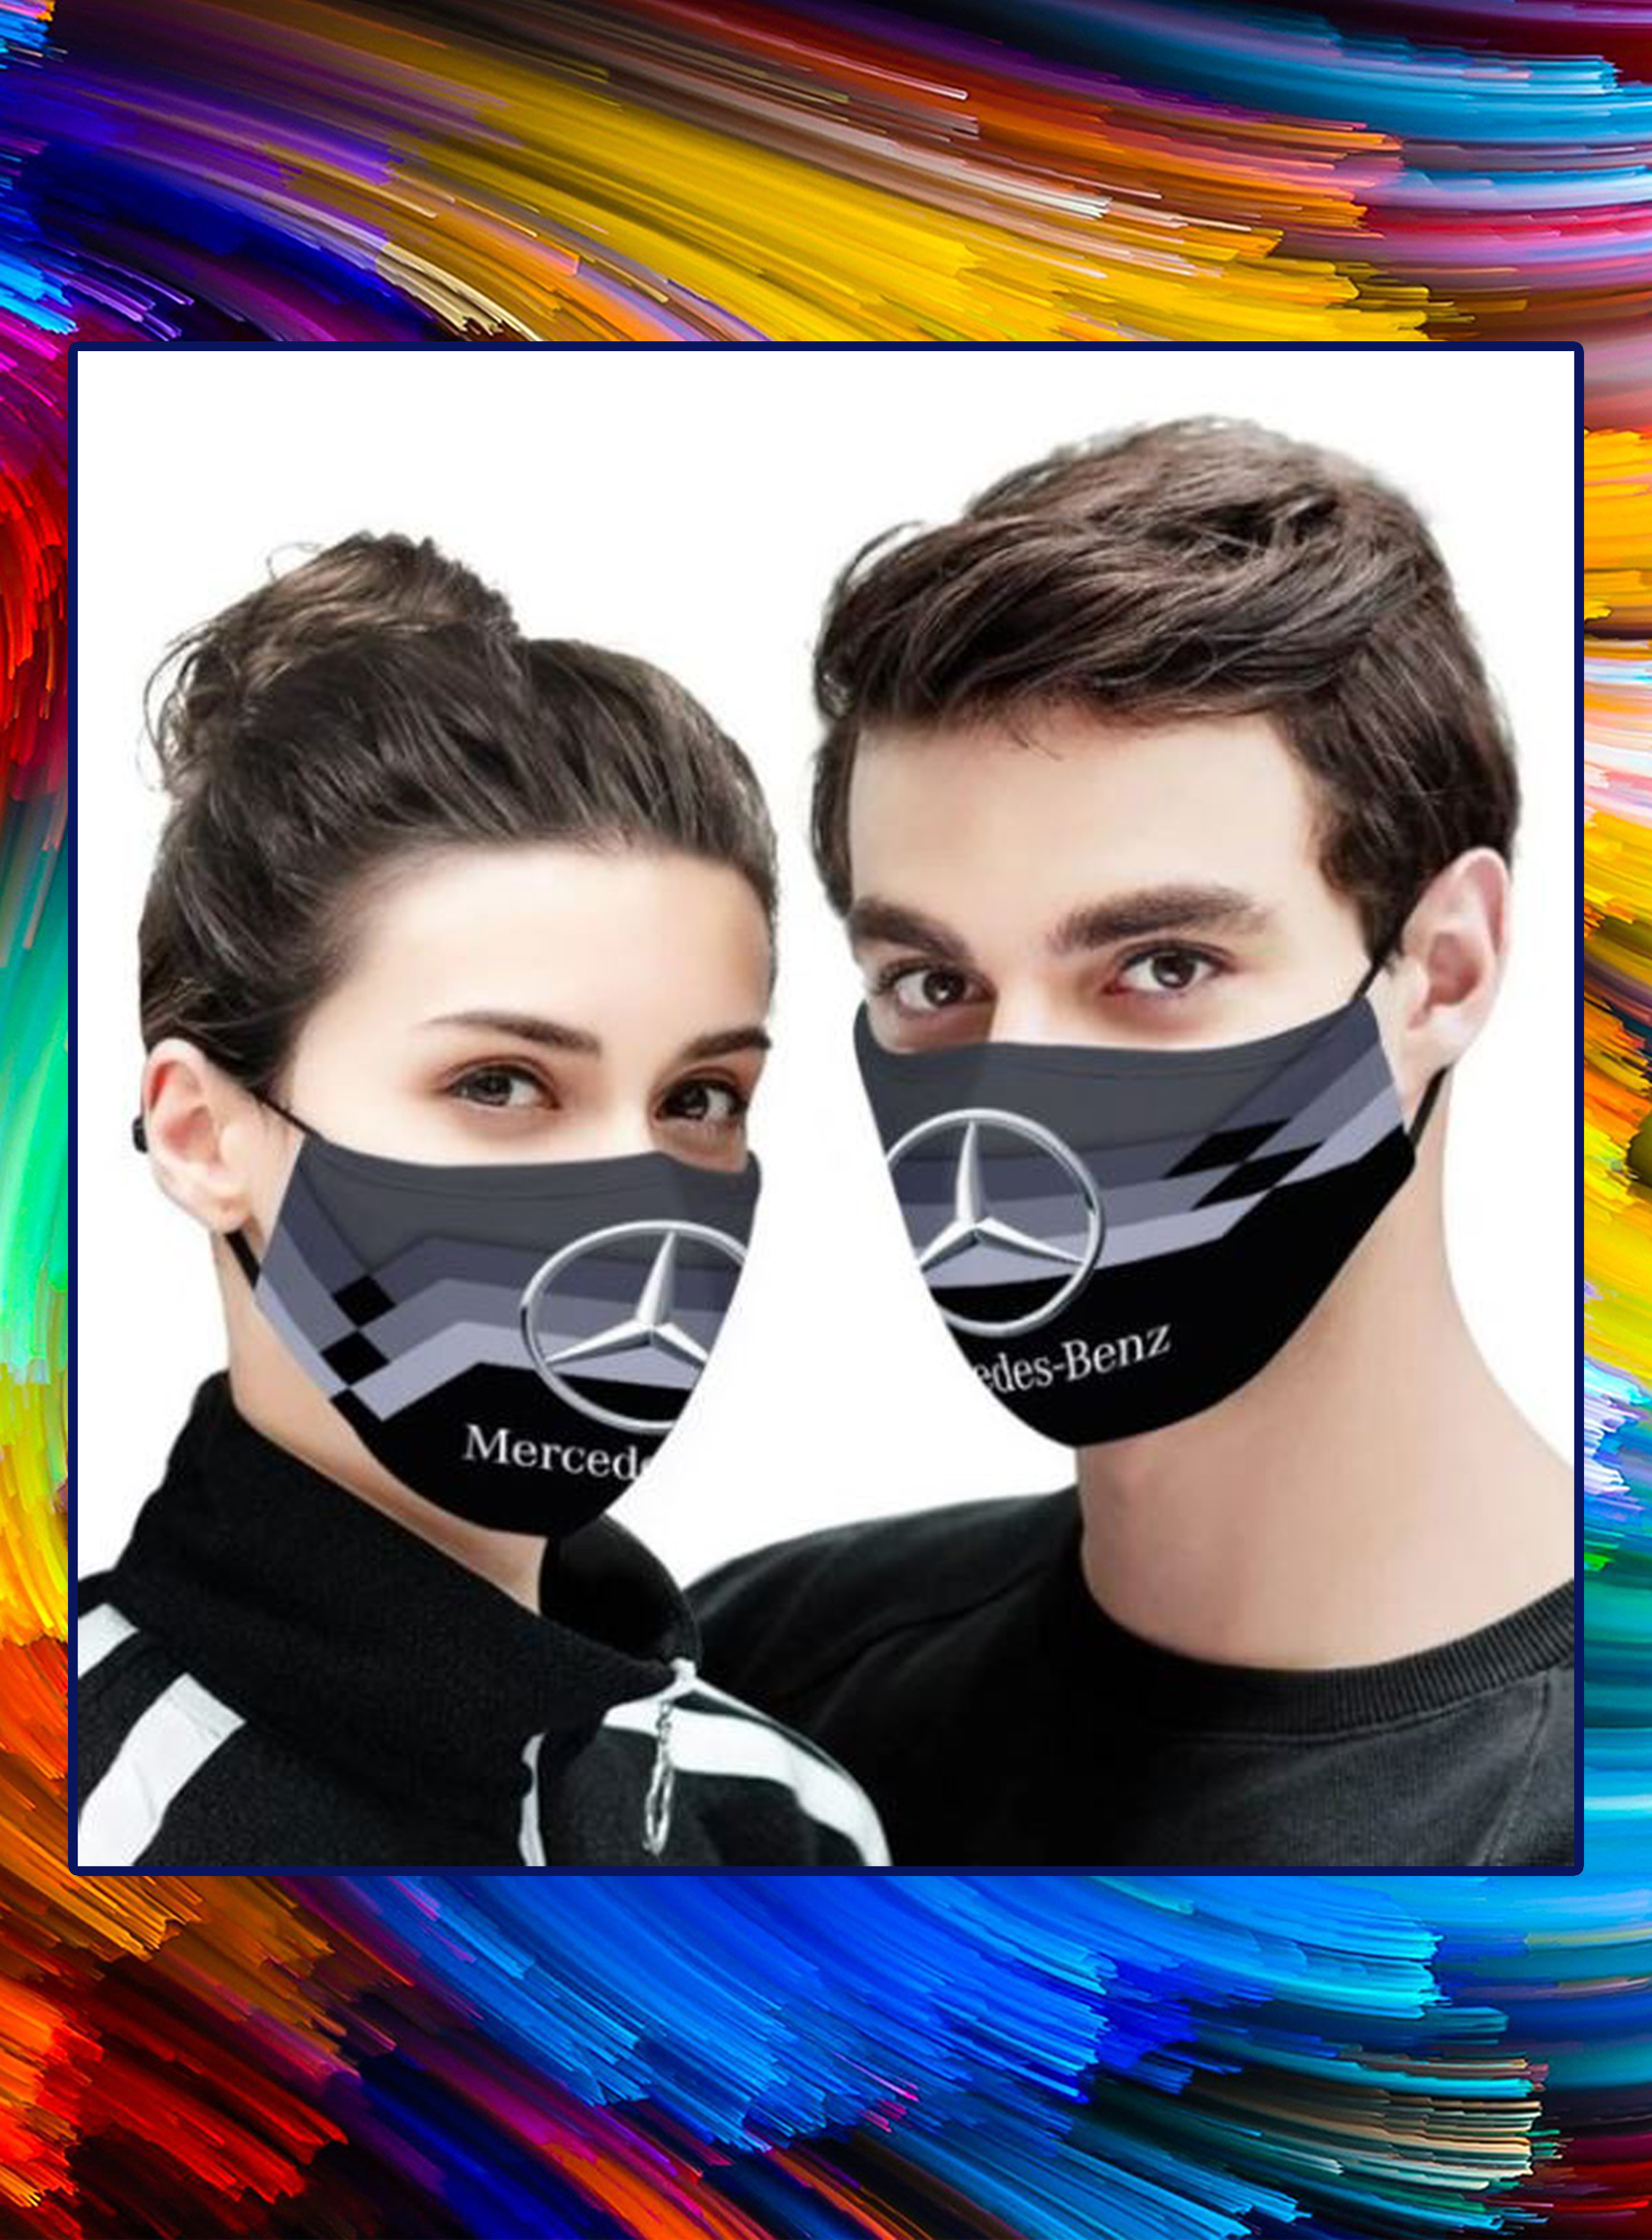 Mercedes-Benz face mask - pic 1